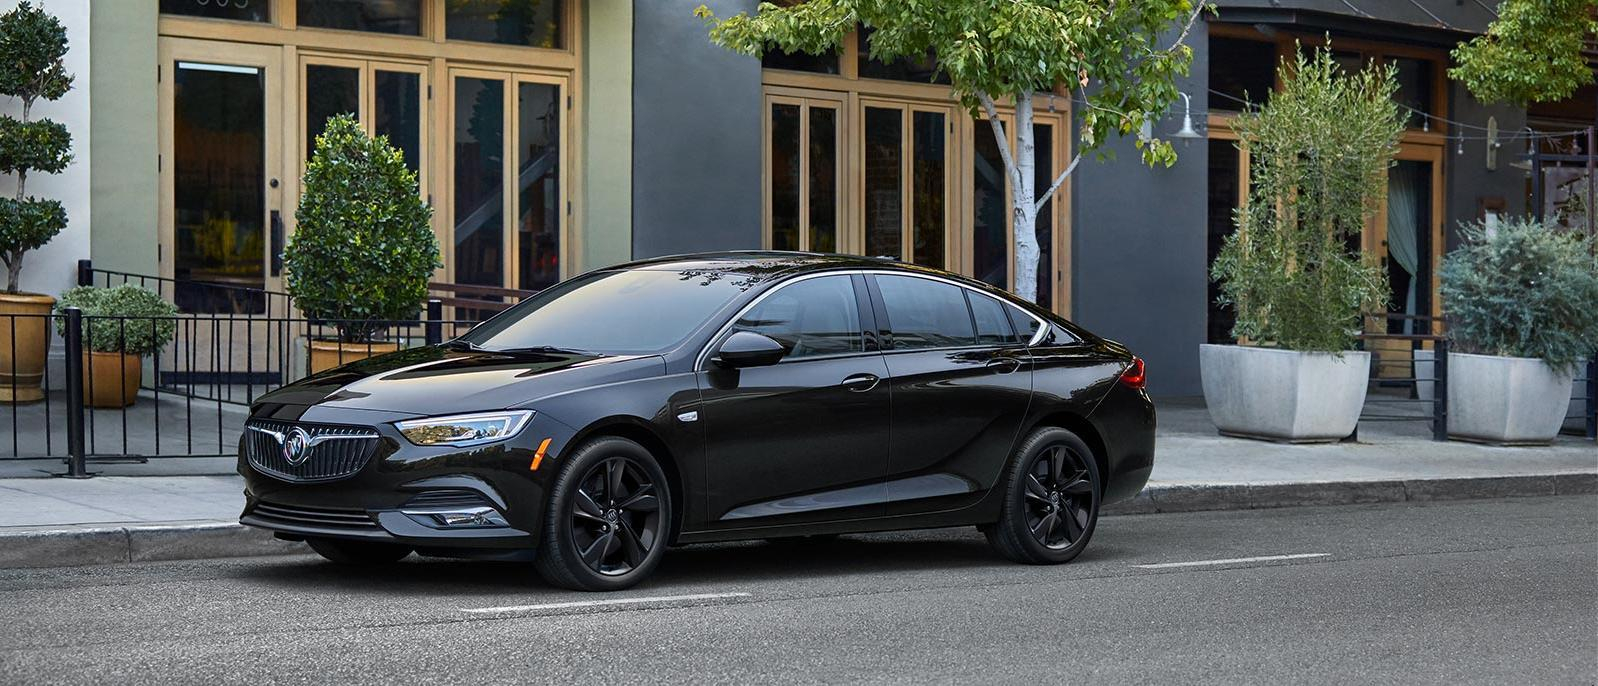 Griffin Price New 2021 Buick Regal Sportback Horsepower, Inventory, Lease